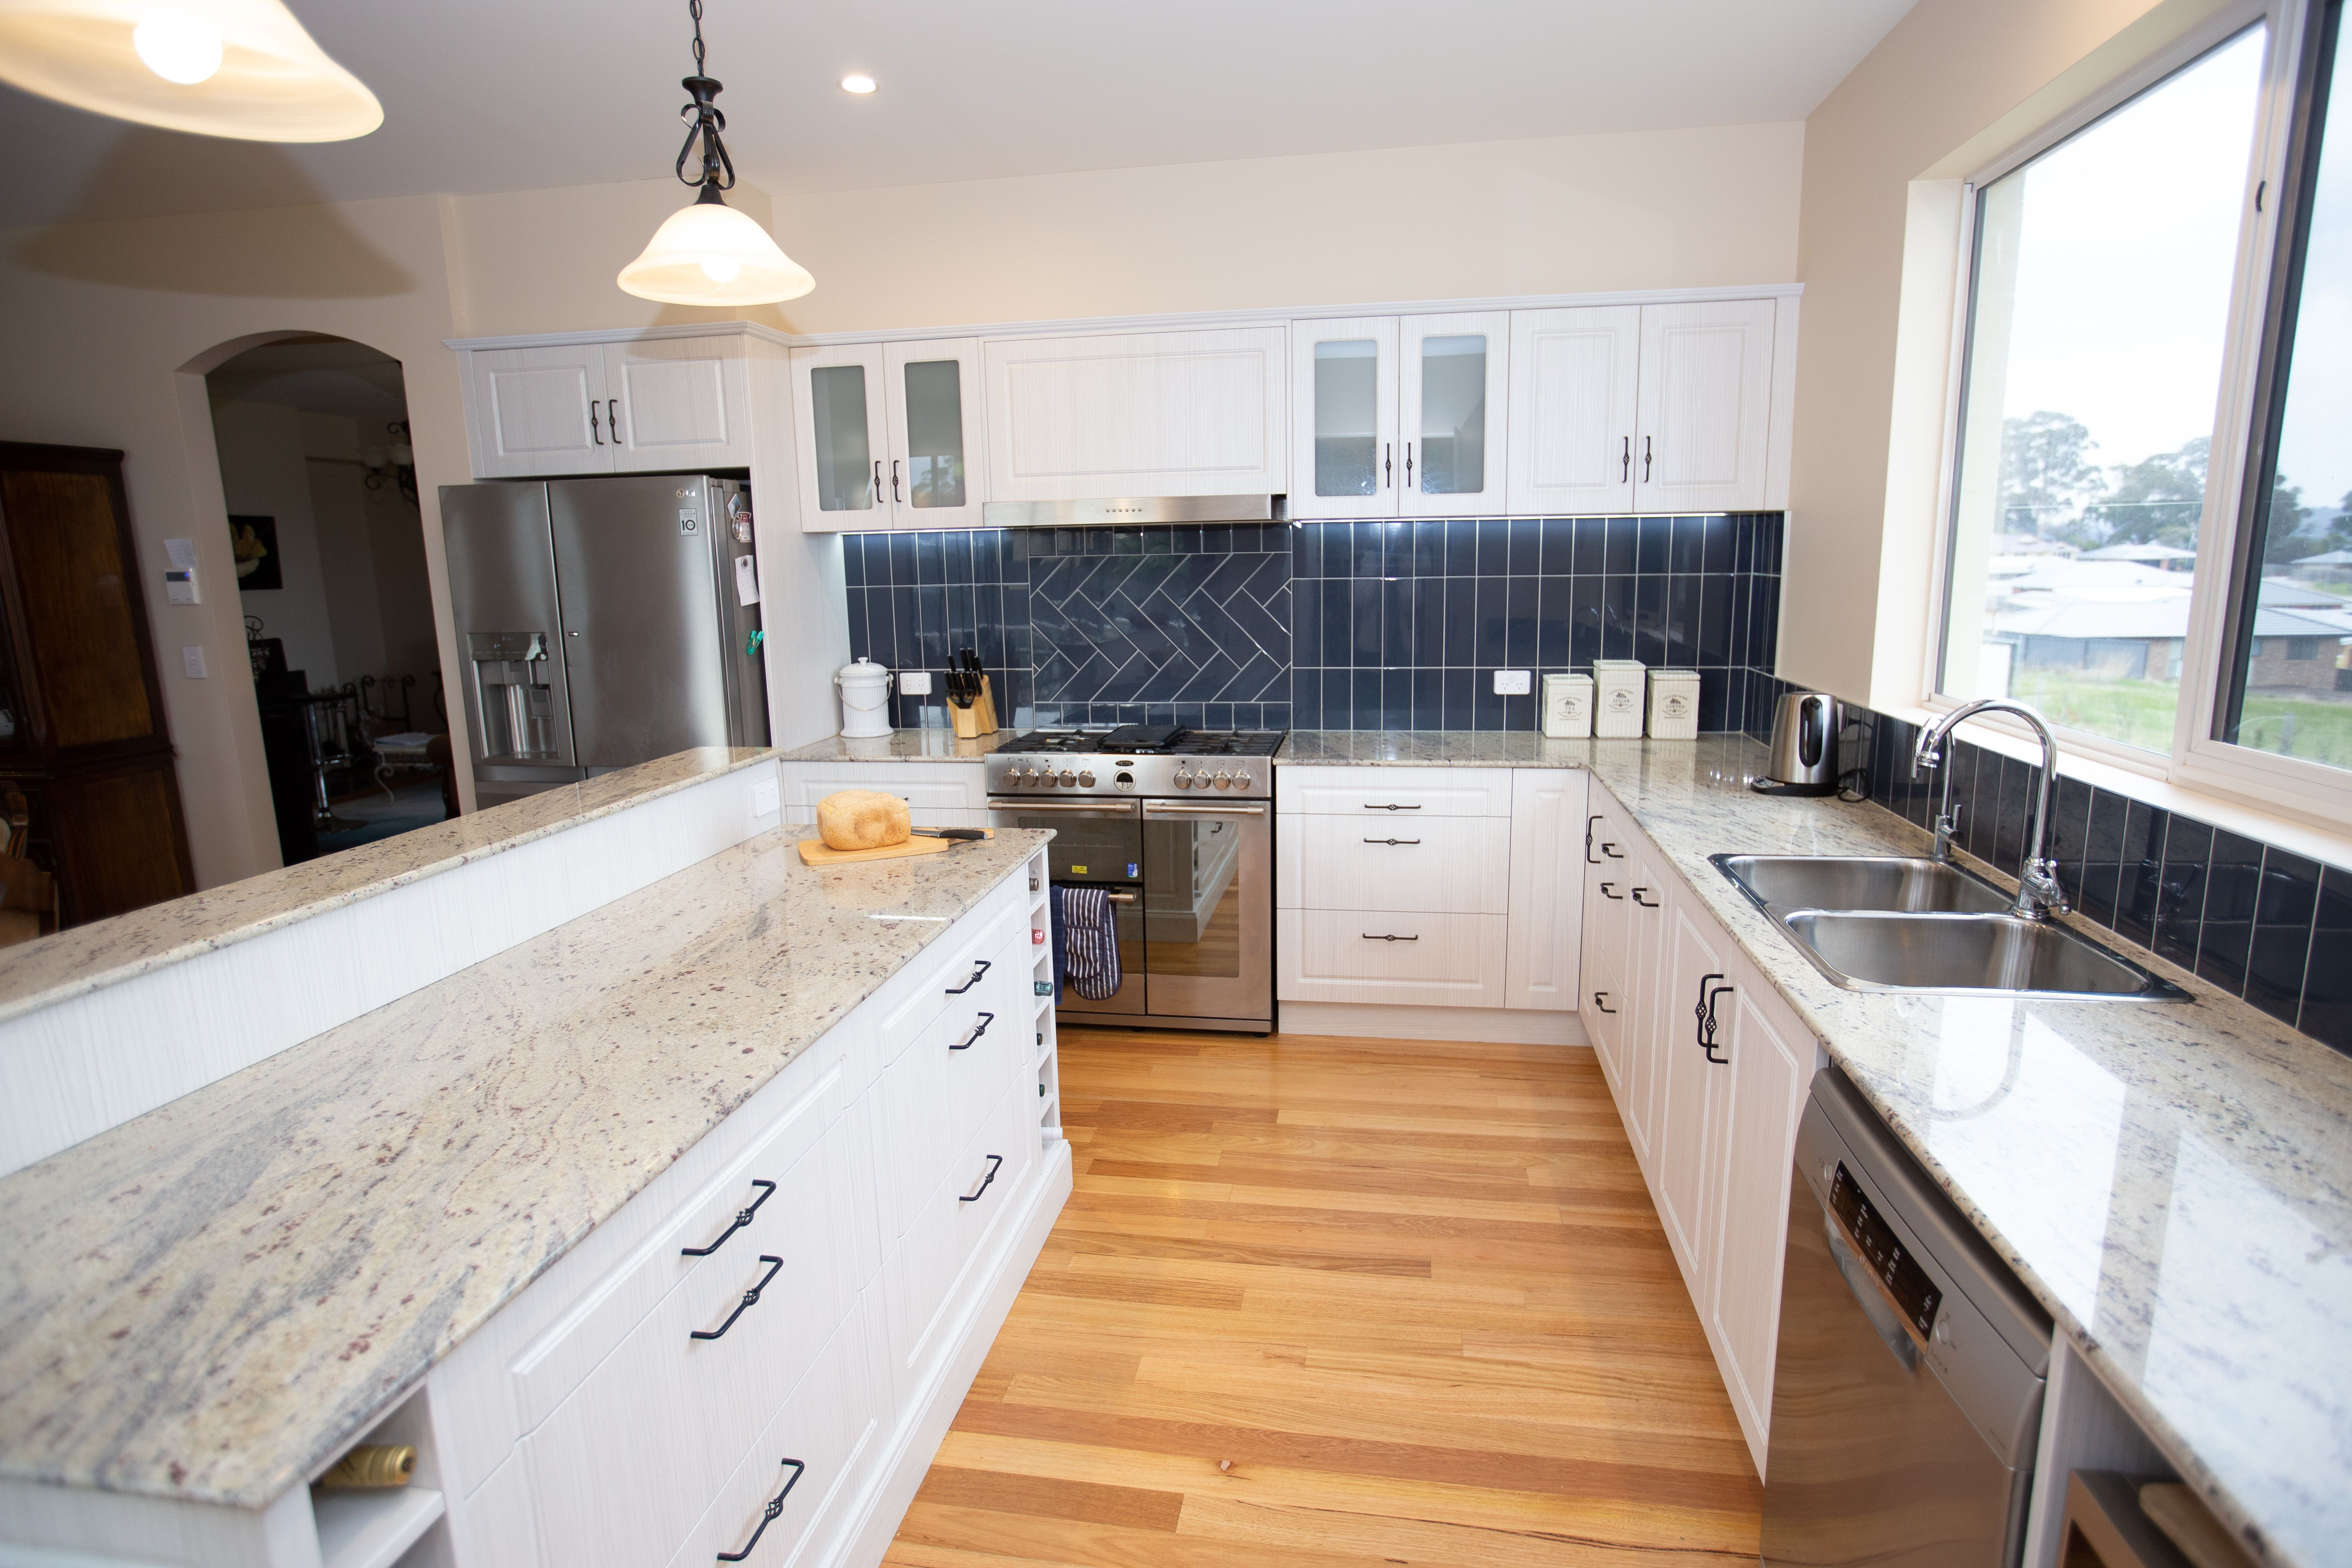 The White Cabinets Are All In The Colour Hacienda White Completed With Tesrol Vinyl Wrap Contemporary Kitchen Design Contemporary Kitchen Kitchen Design